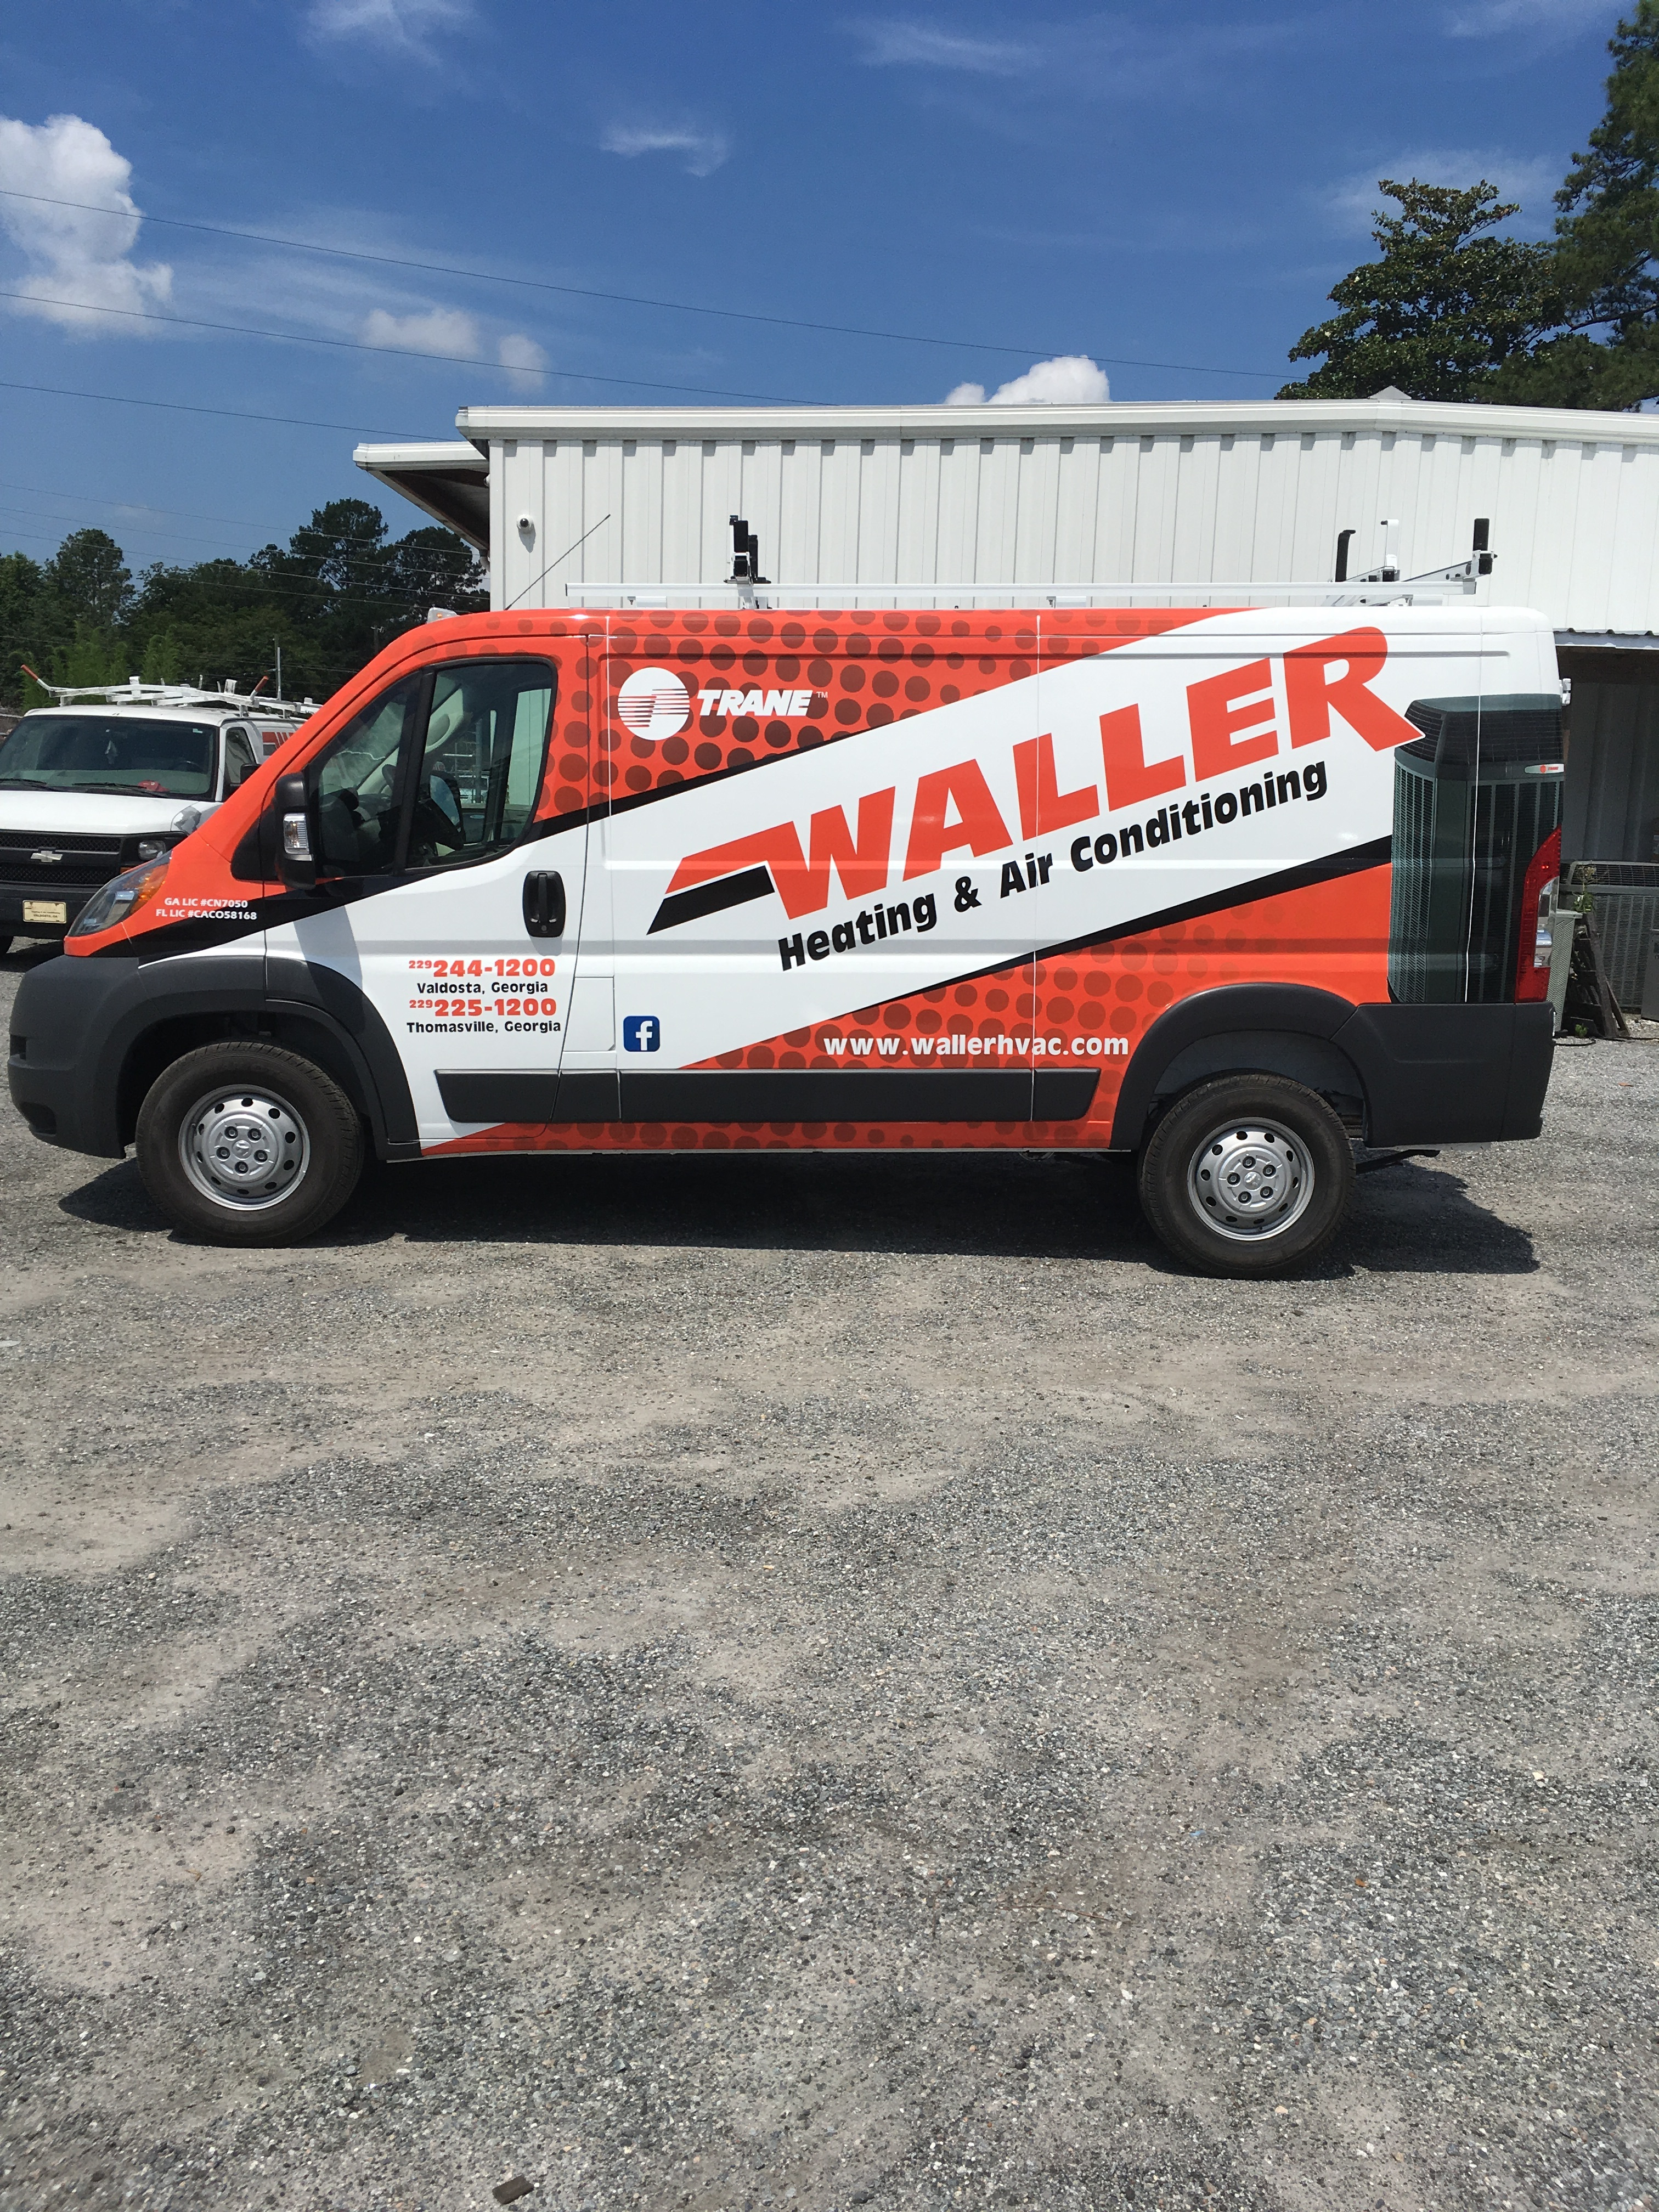 Waller Heating & Air Conditioning Valdosta (229)518-4805